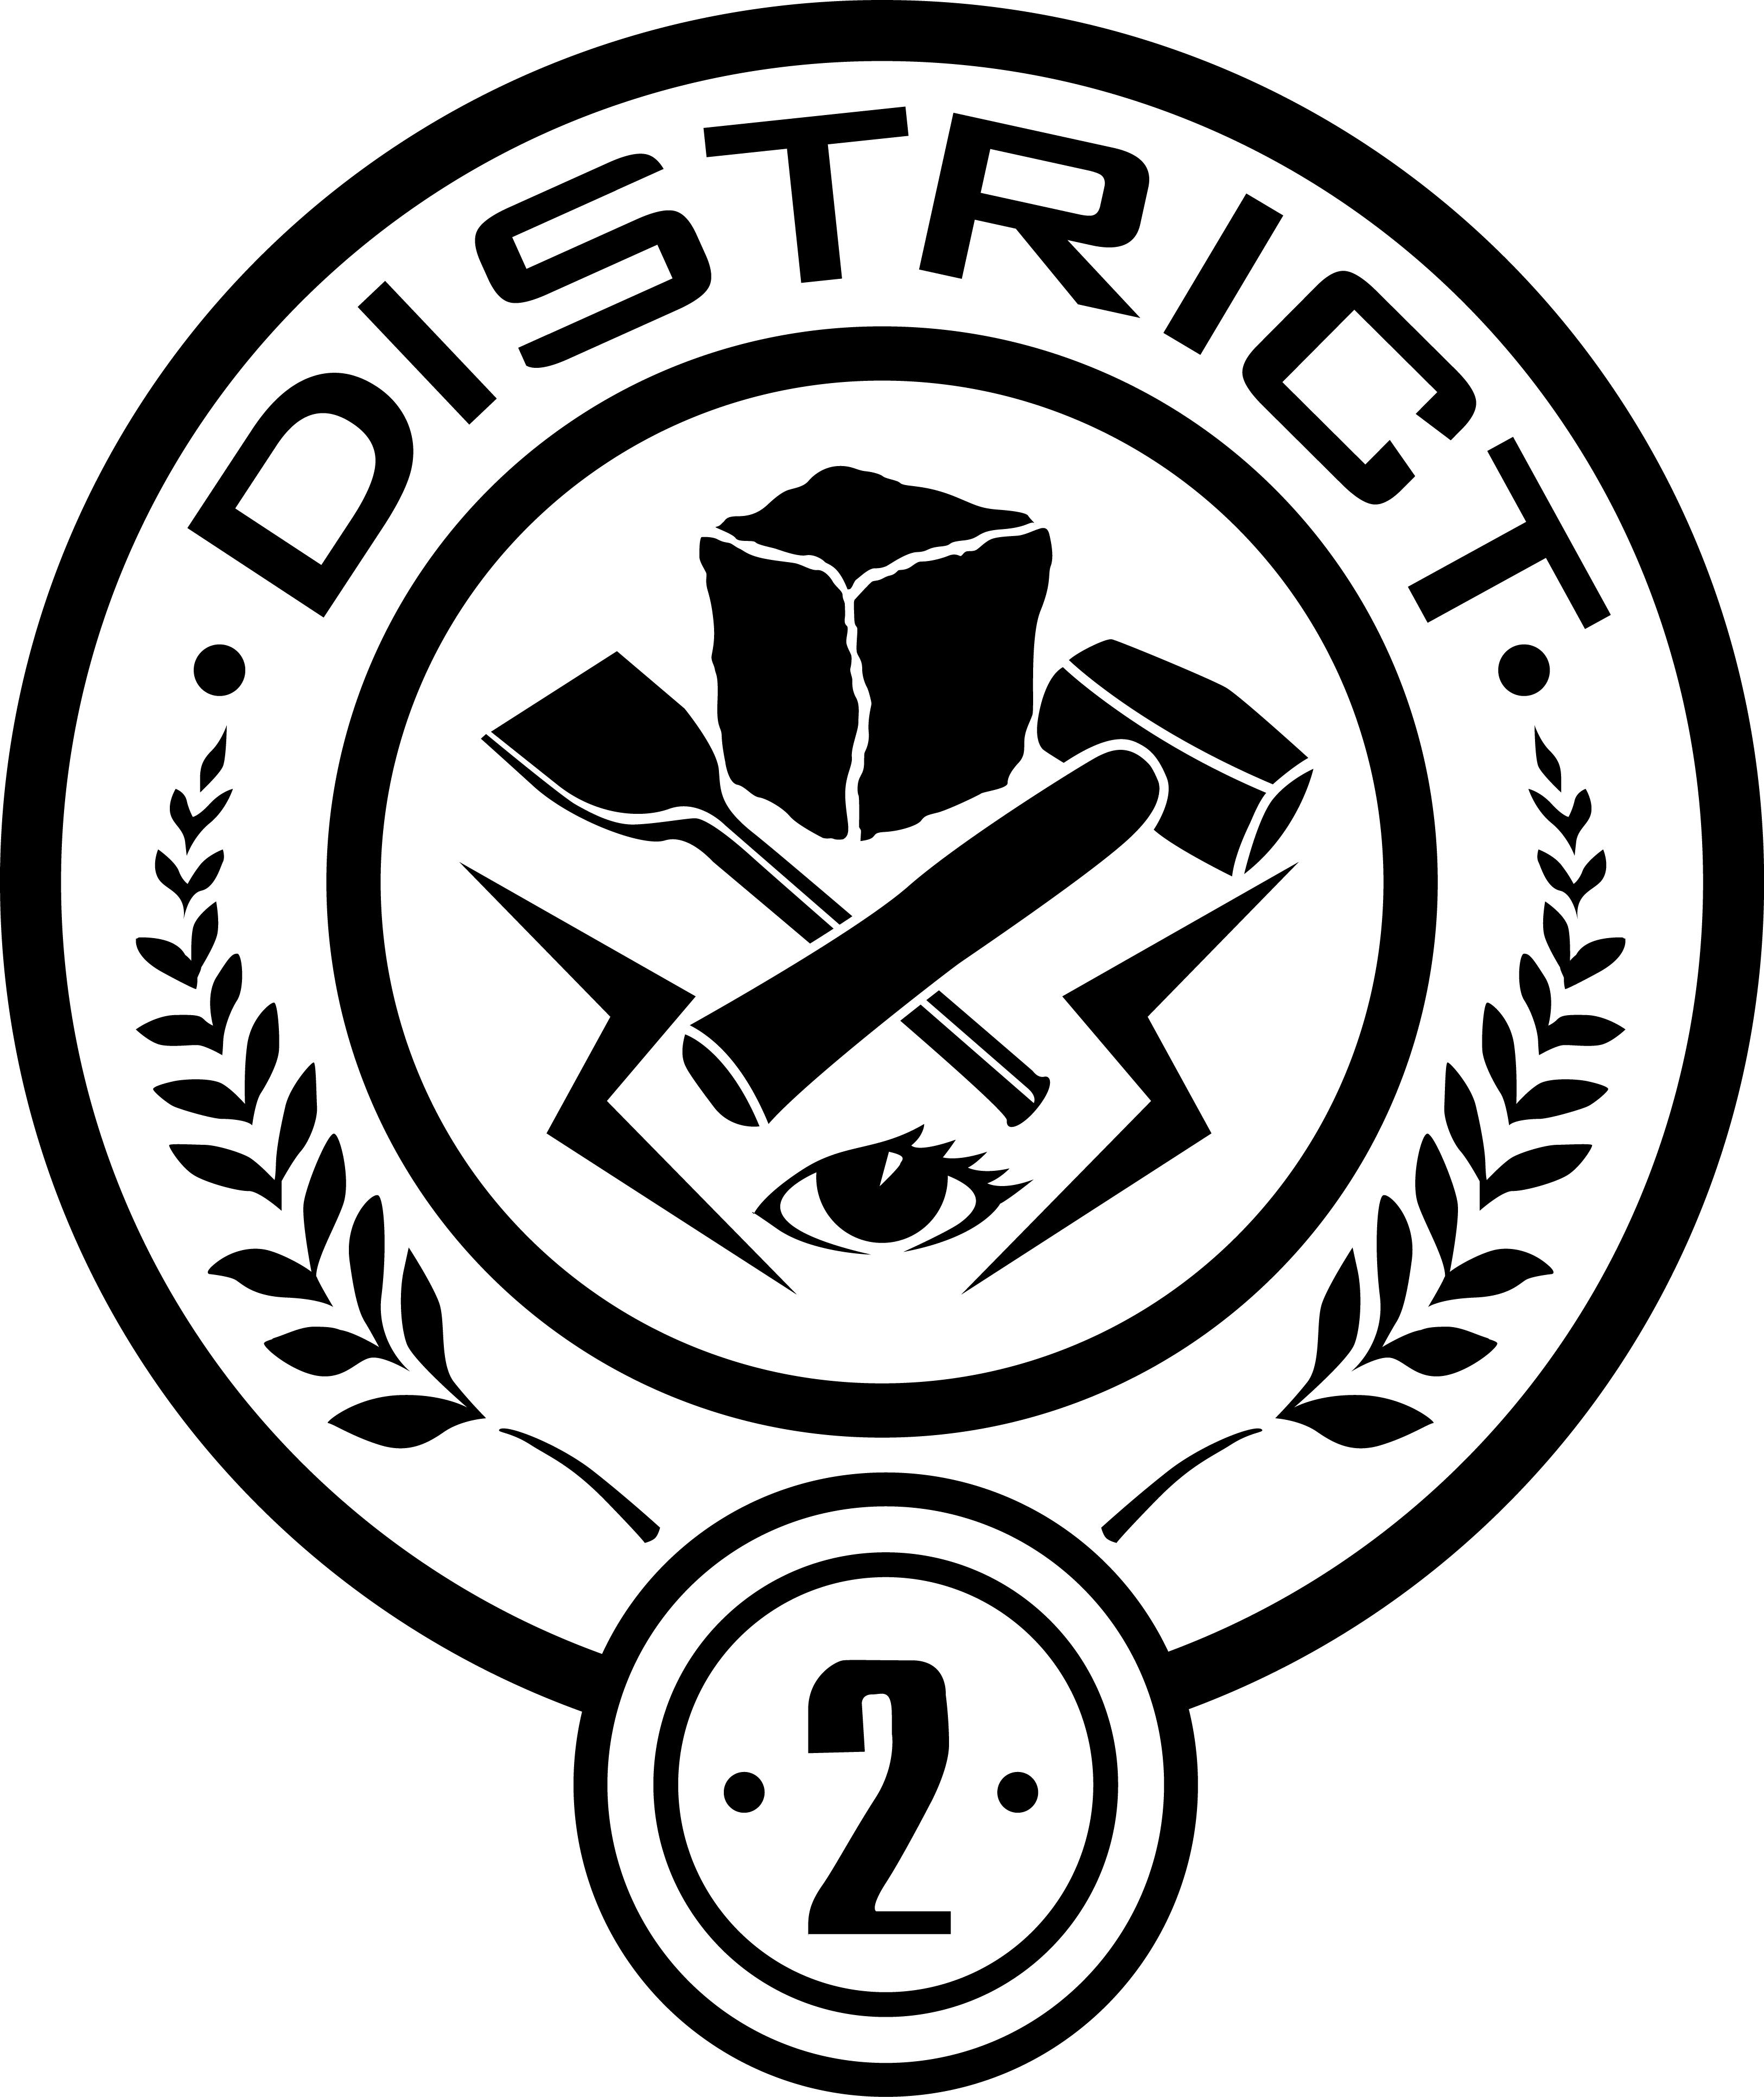 Hunger games by trebory6 on deviantart trebory6 28 8 district 2 seal by trebory6 buycottarizona